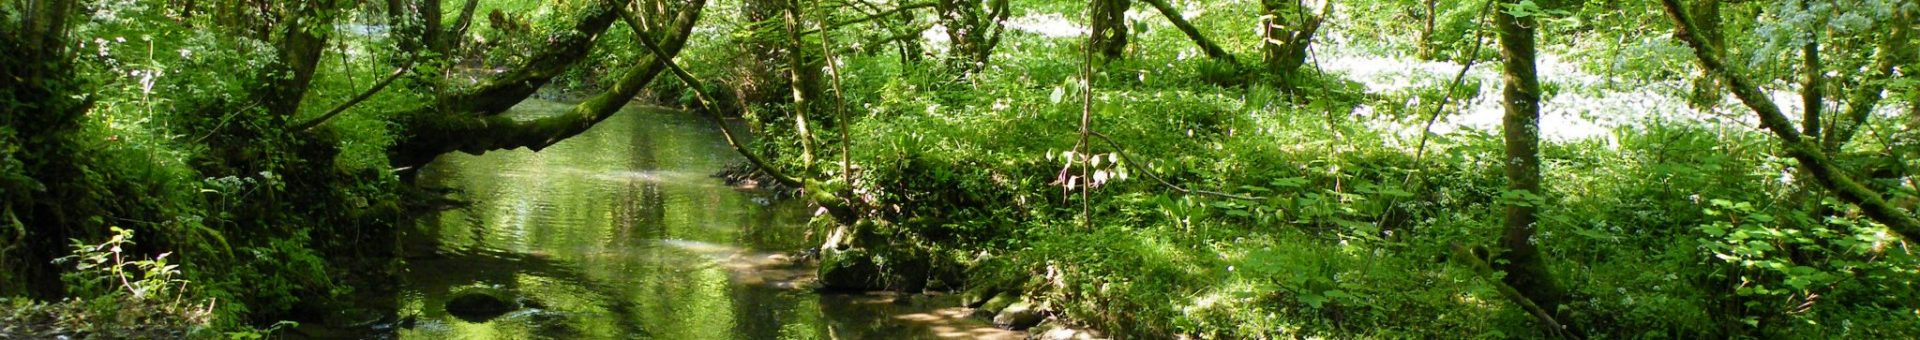 Photo of a river in woodland during summer.